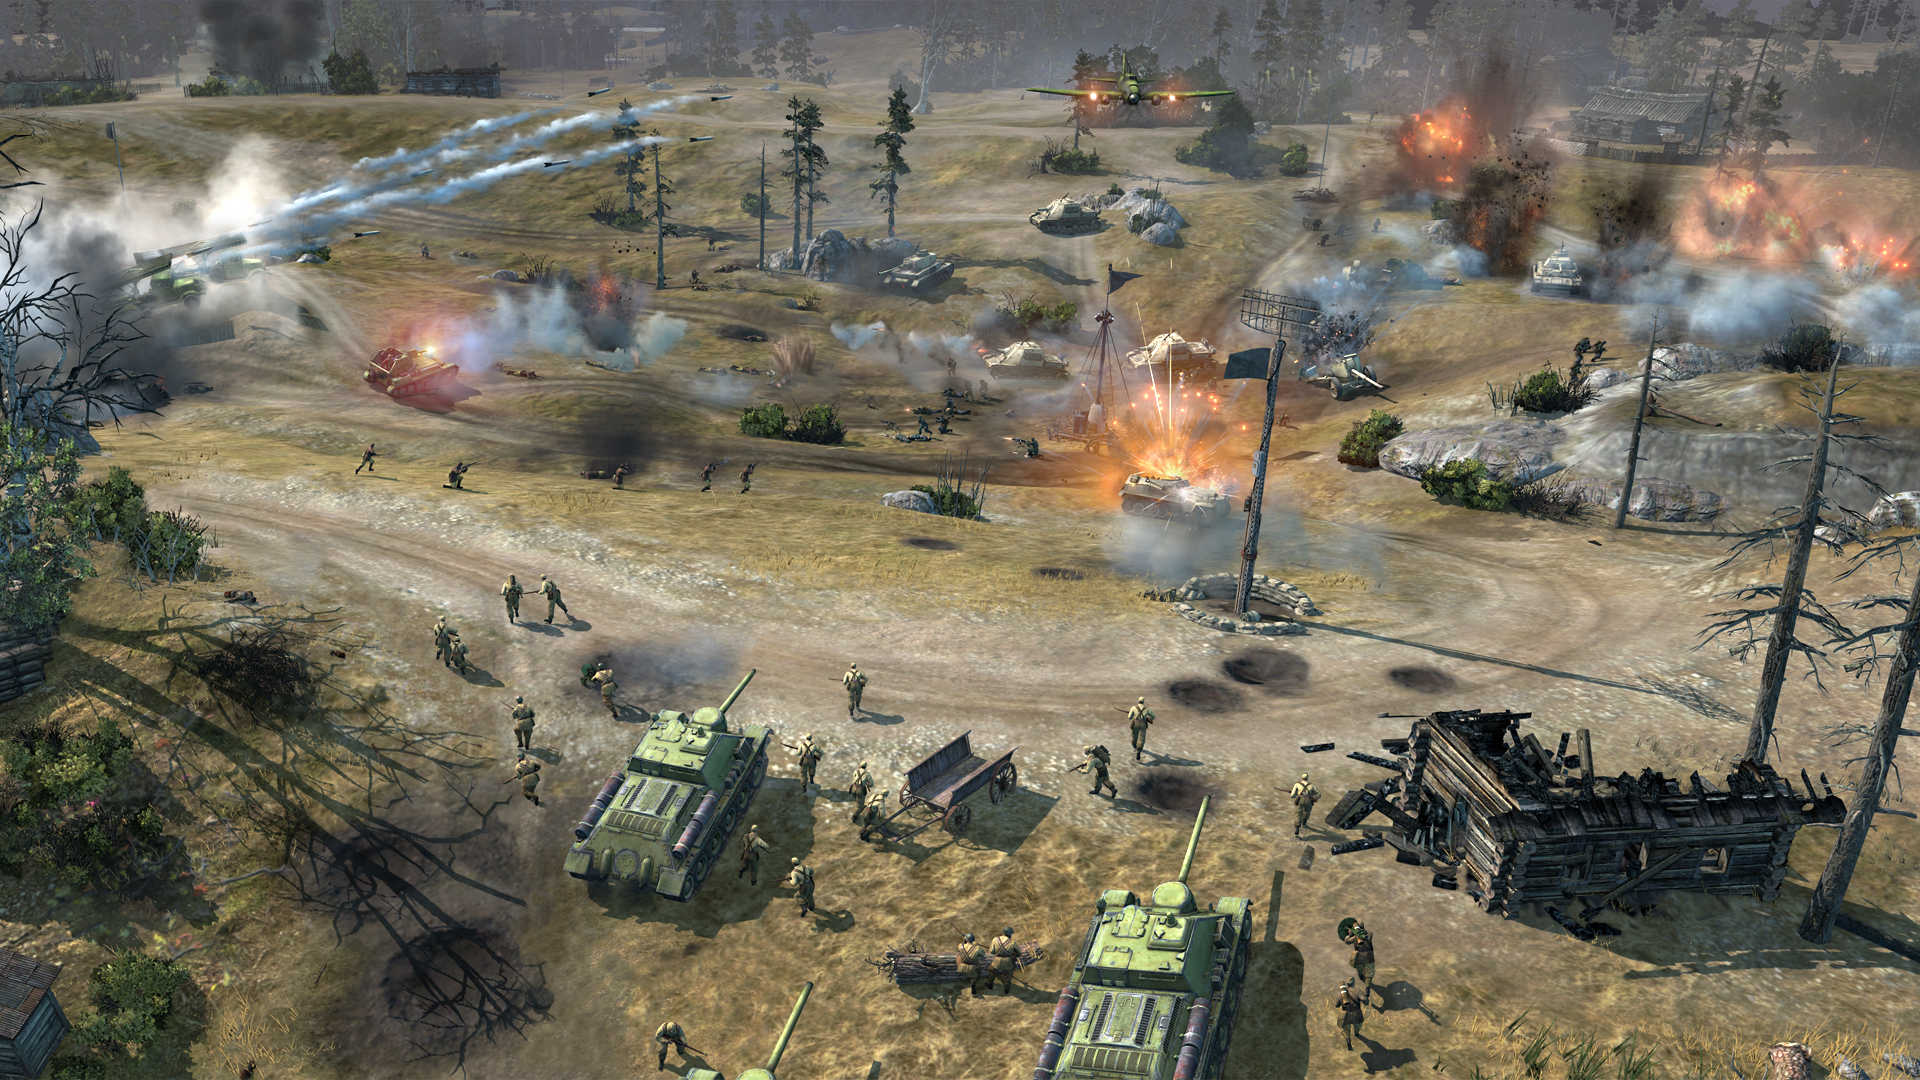 High Resolution Wallpaper | Company Of Heroes 2 1920x1080 px